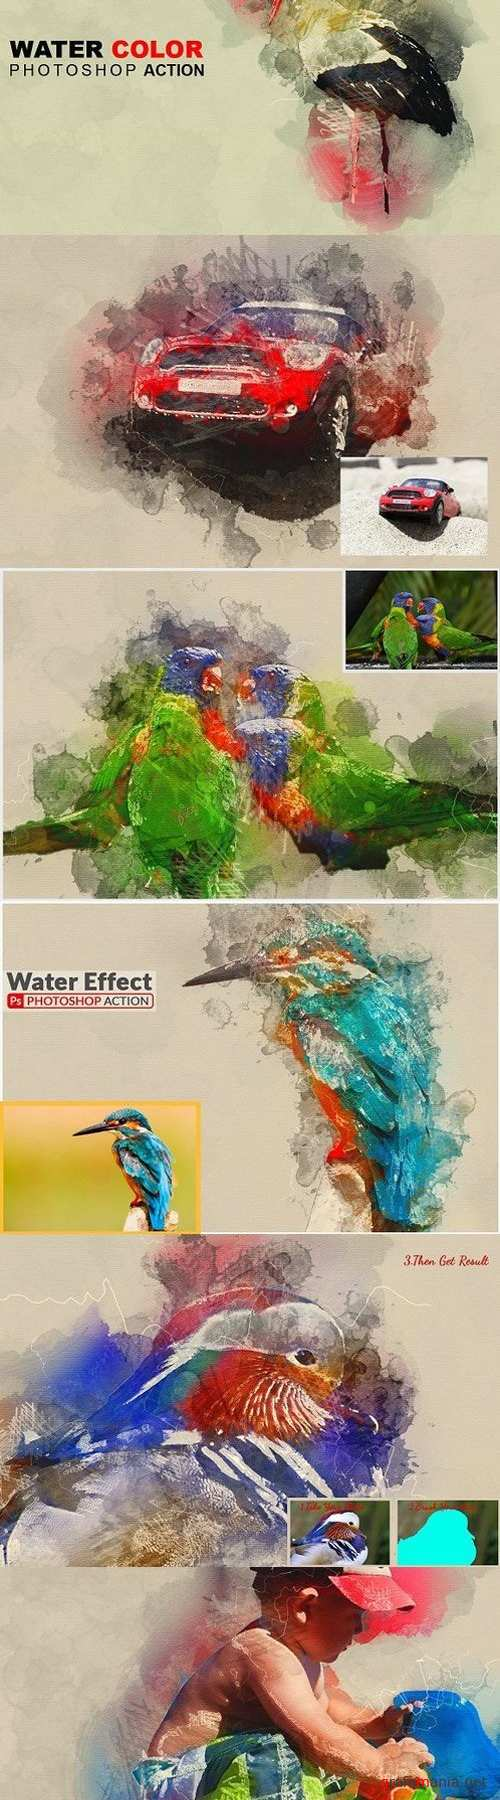 Water Color Photoshop Action 1573158